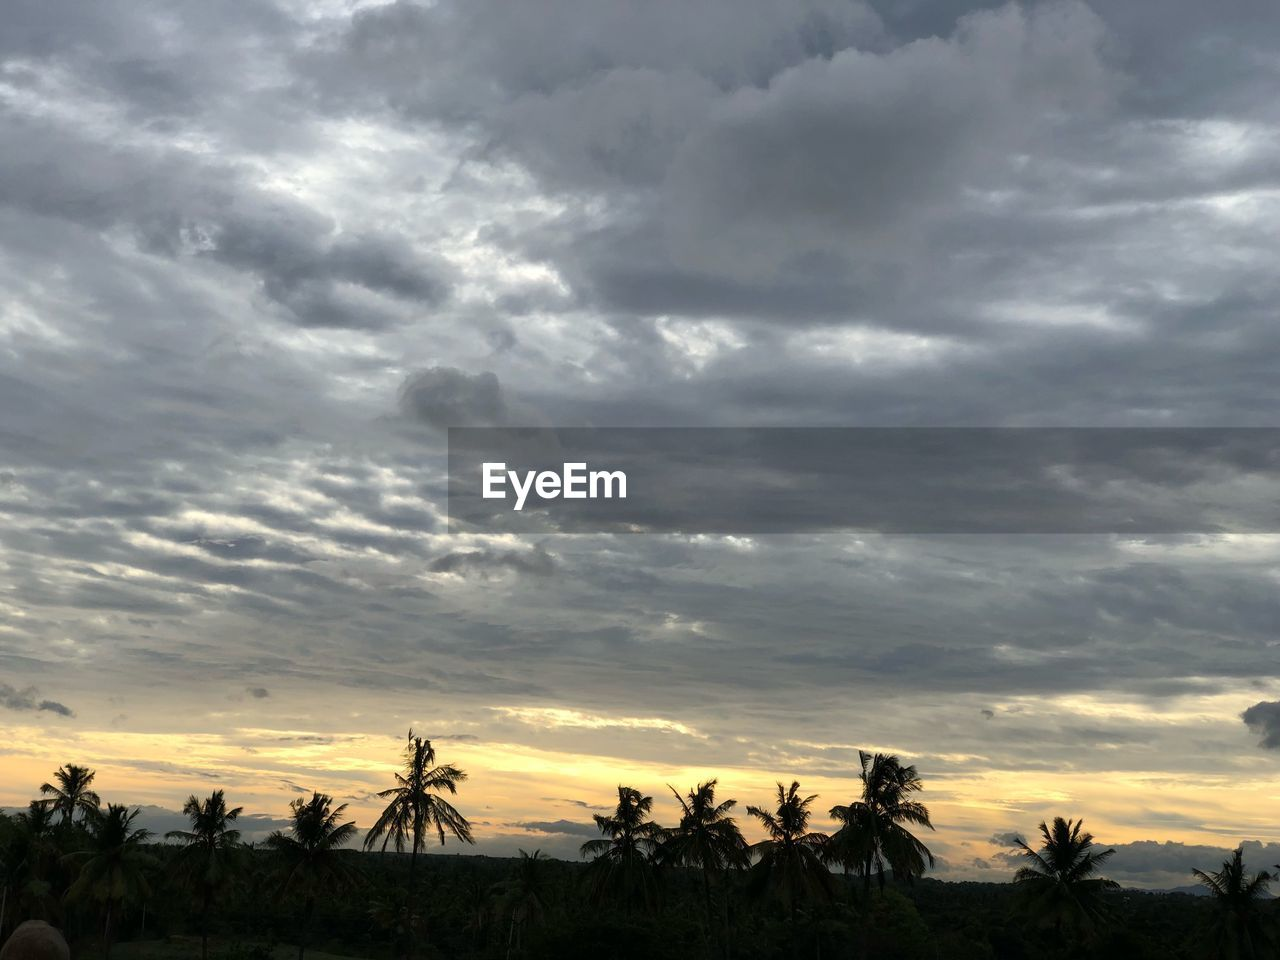 cloud - sky, sky, beauty in nature, sunset, scenics - nature, tree, tranquil scene, tranquility, plant, nature, palm tree, environment, landscape, non-urban scene, silhouette, tropical climate, land, idyllic, no people, outdoors, coconut palm tree